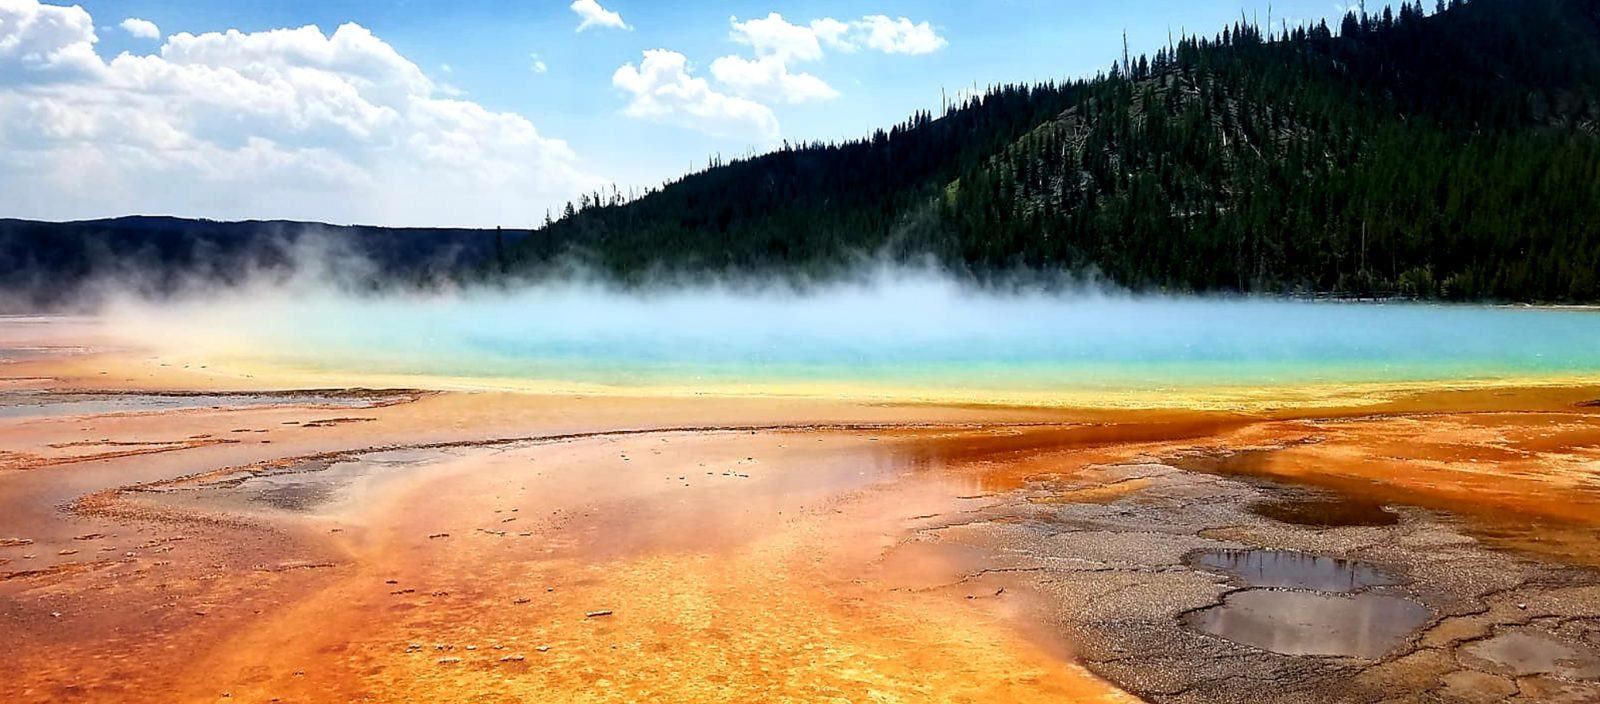 National Parks Family Journey: Yellowstone and Grand Teton